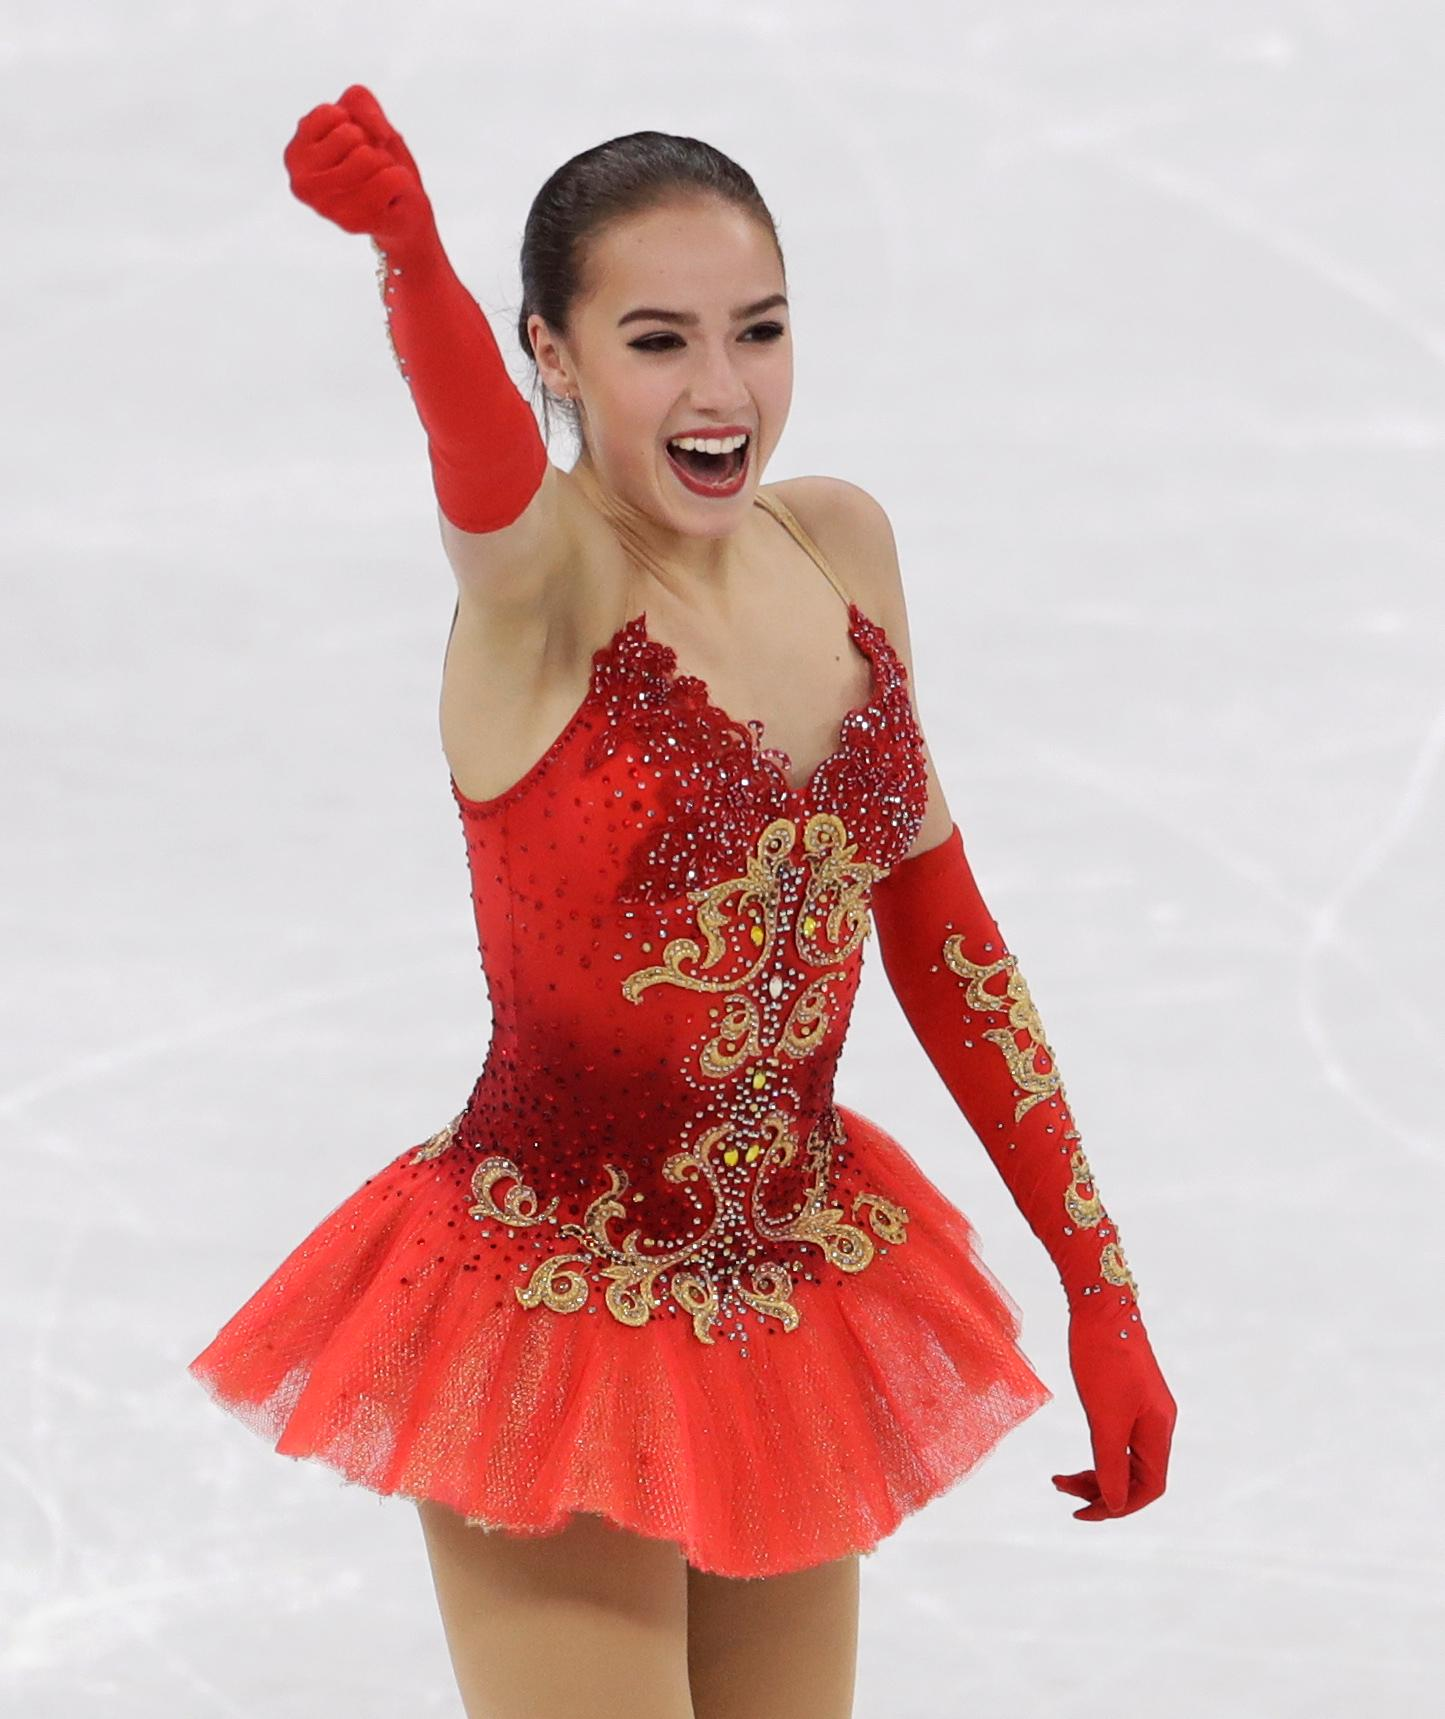 Alina Zagitova of the Olympic Athletes of Russia reacts following her performance during the women's free figure skating final in the Gangneung Ice Arena at the 2018 Winter Olympics in Gangneung, South Korea, Friday, Feb. 23, 2018. (AP Photo/Petr David Josek)